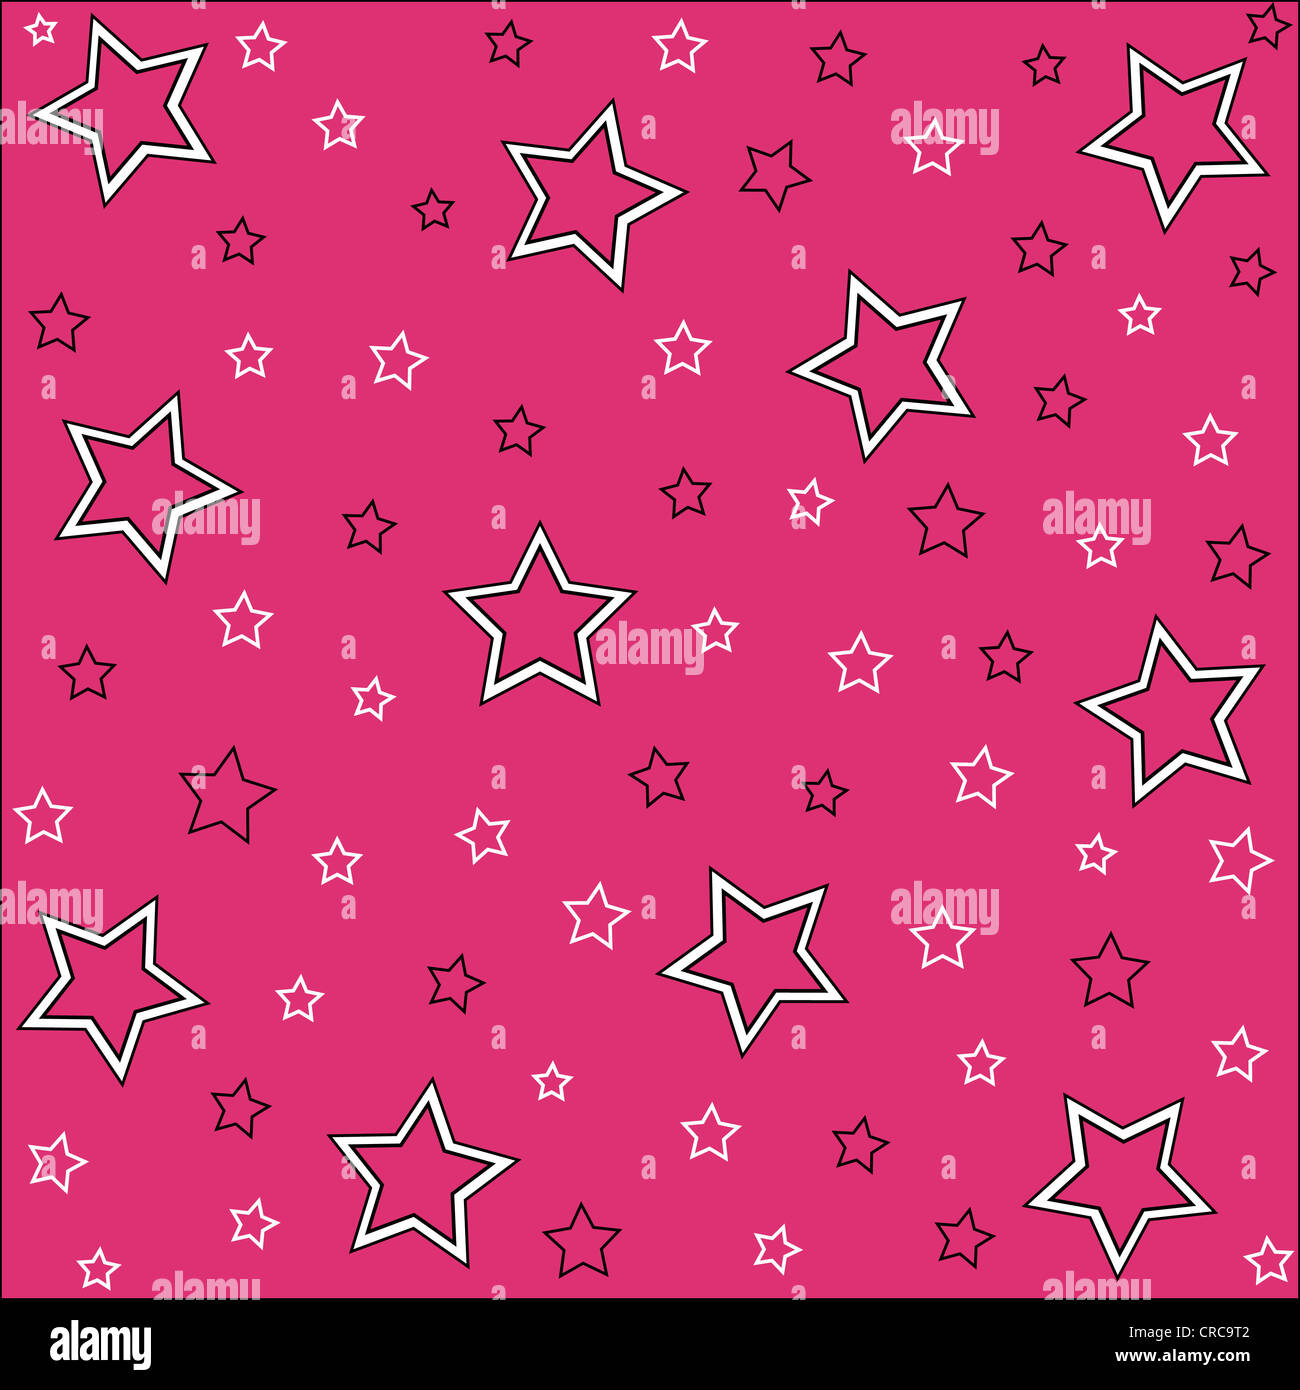 Seamless stars pattern in white, black and pink Stock Photo